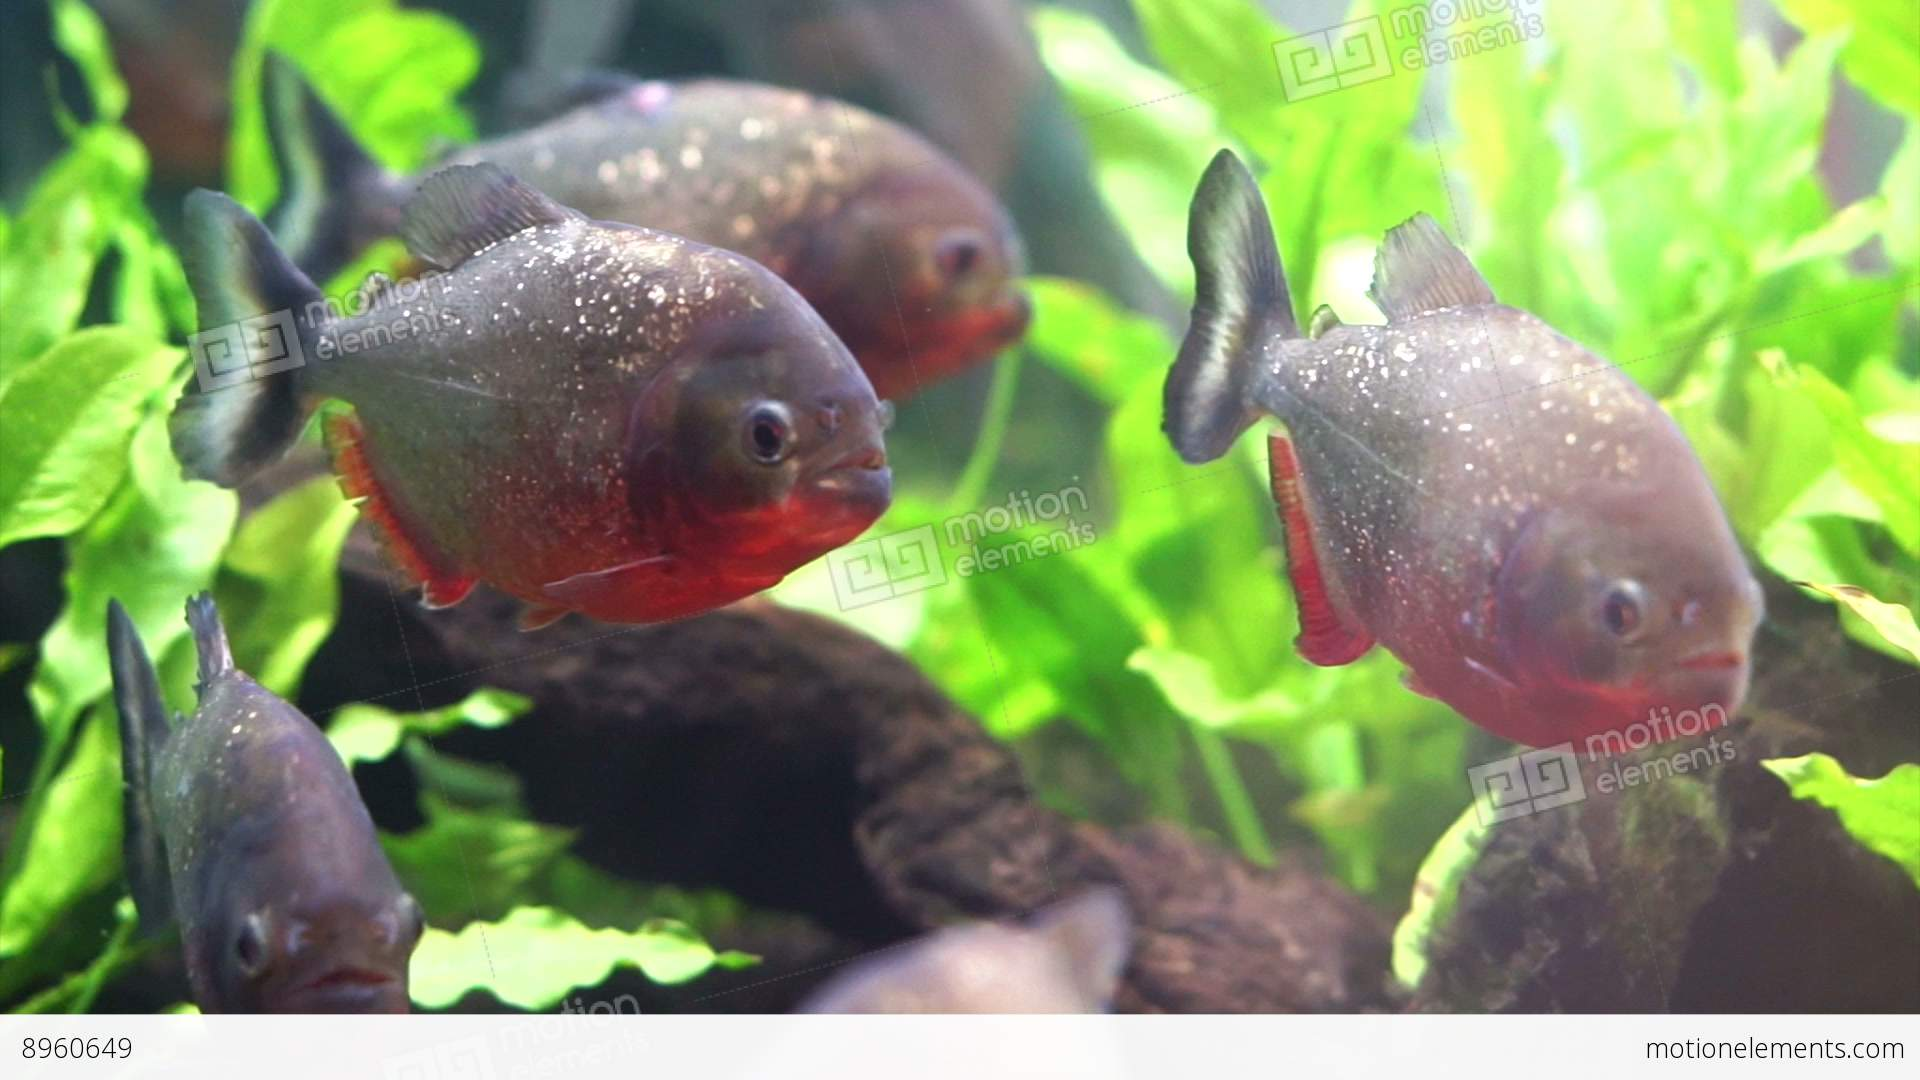 Freshwater aquarium fish library - Piranha Freshwater Fish In South American Rivers Aggressive And Love To Eat Mea Etoque De Filmagem Royalty Free Video Library 8960649